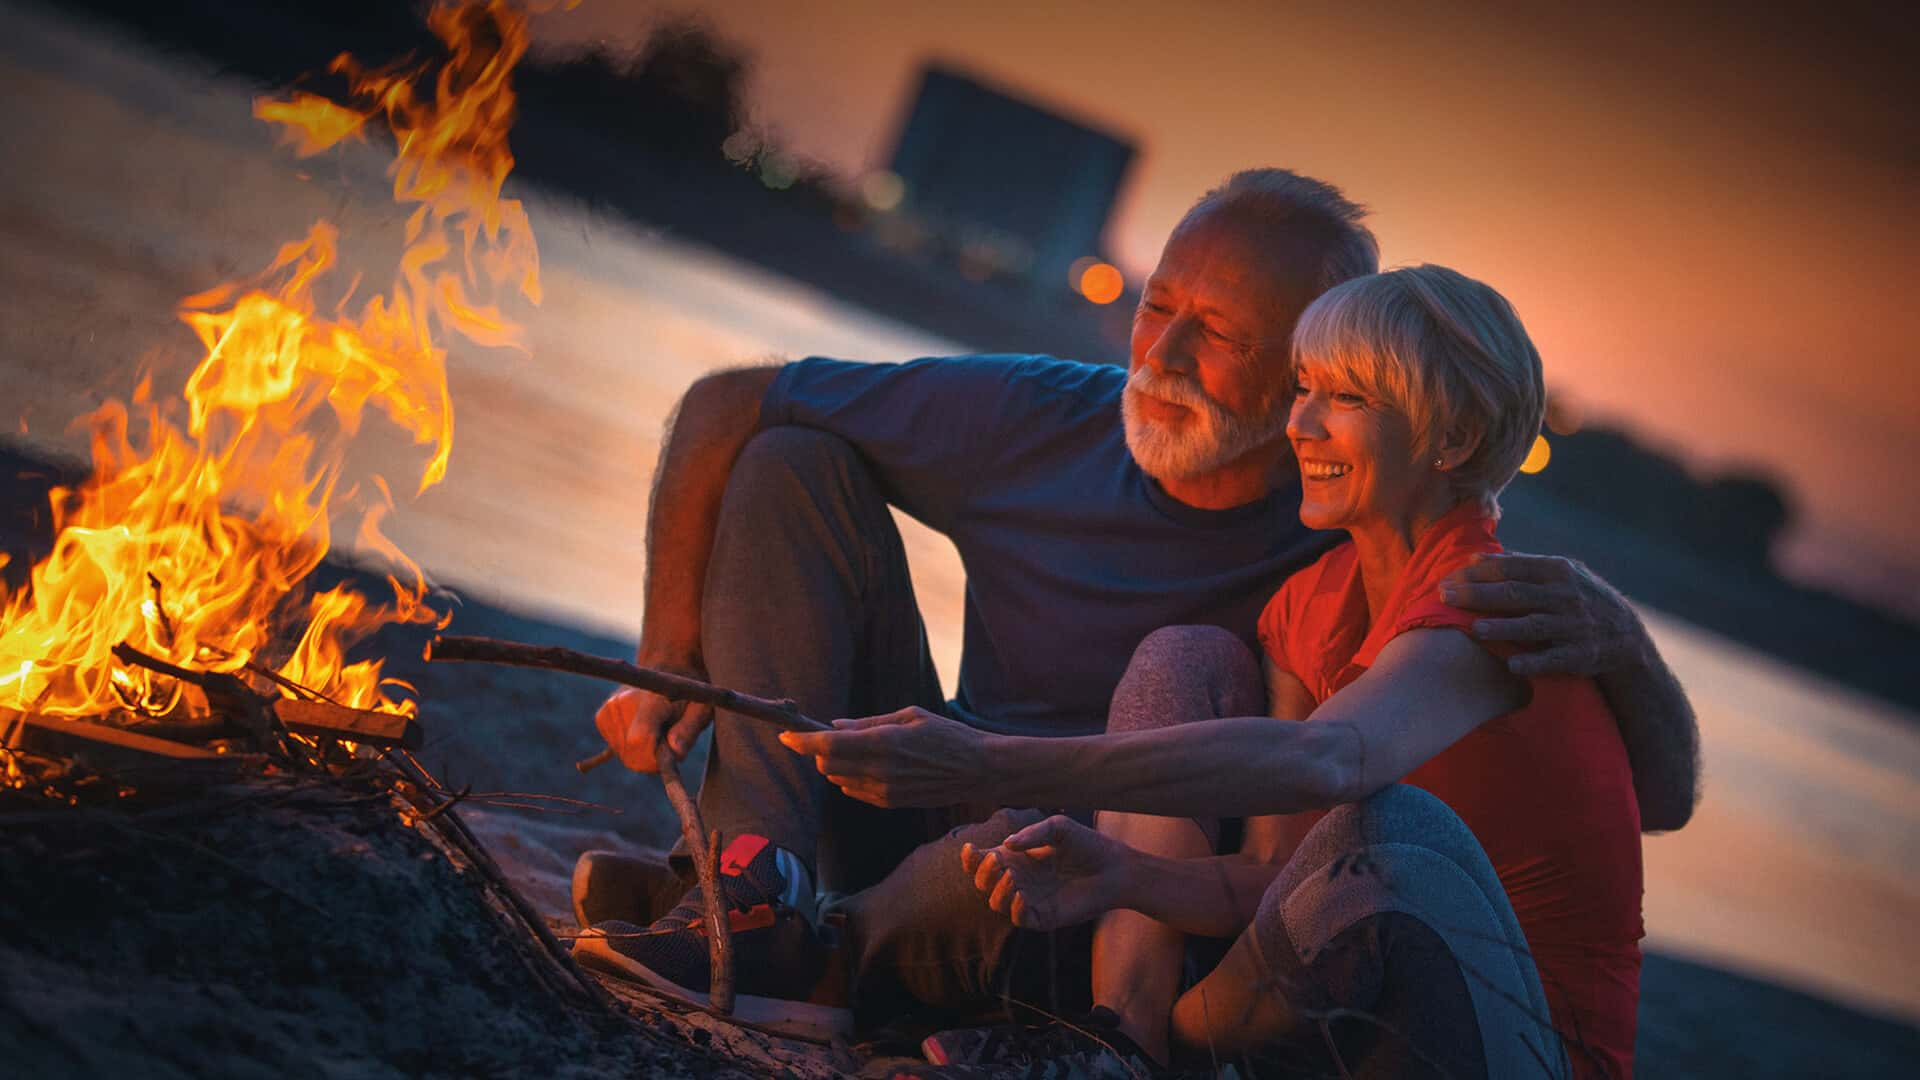 60s dating symbolized by a happy couple sitting in front of a campfire in Canada